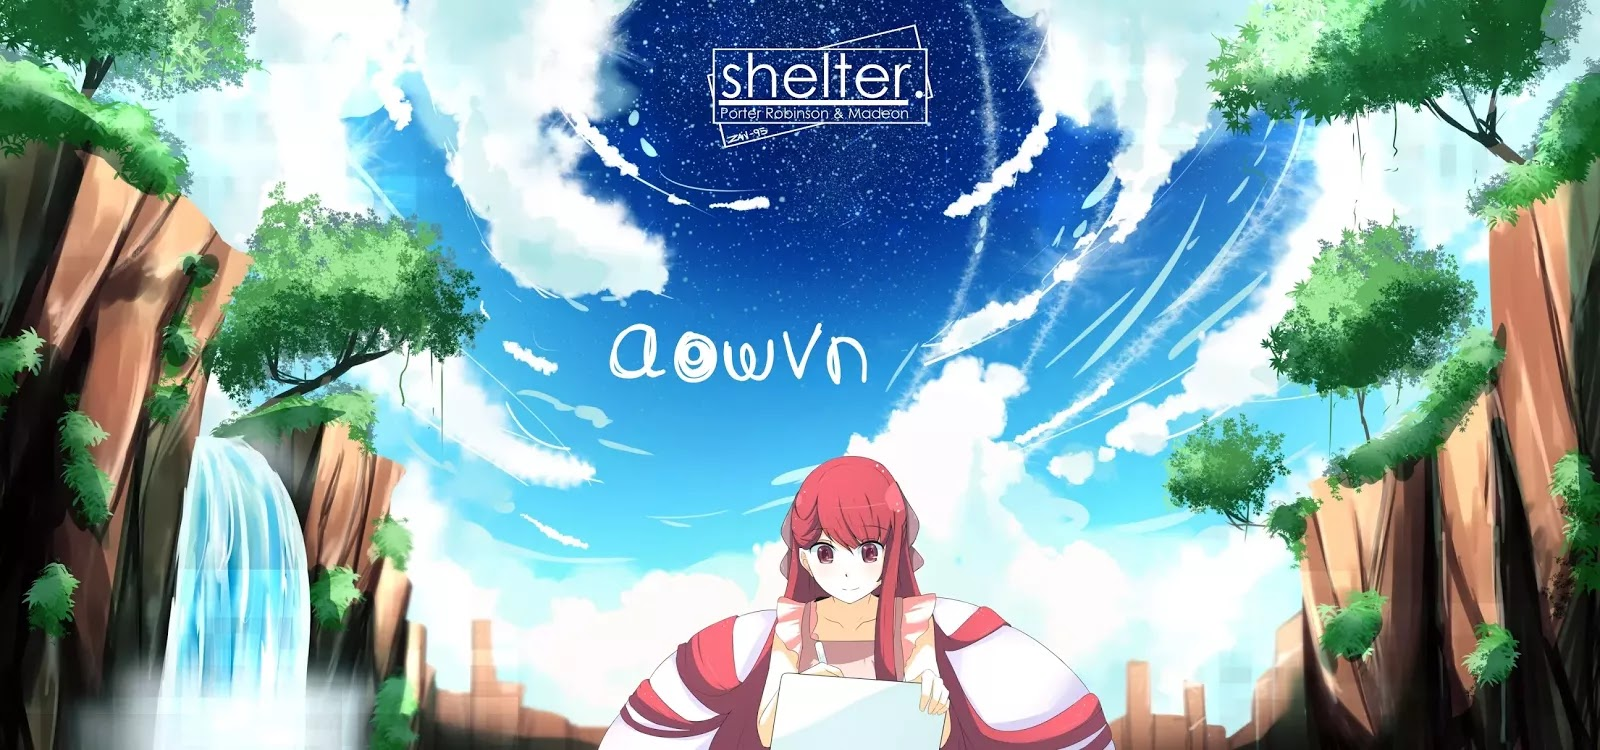 shelter aowvn2 - [ Electronic ] Shelter - Pure 100% Remix | Nghe Nhạc Online